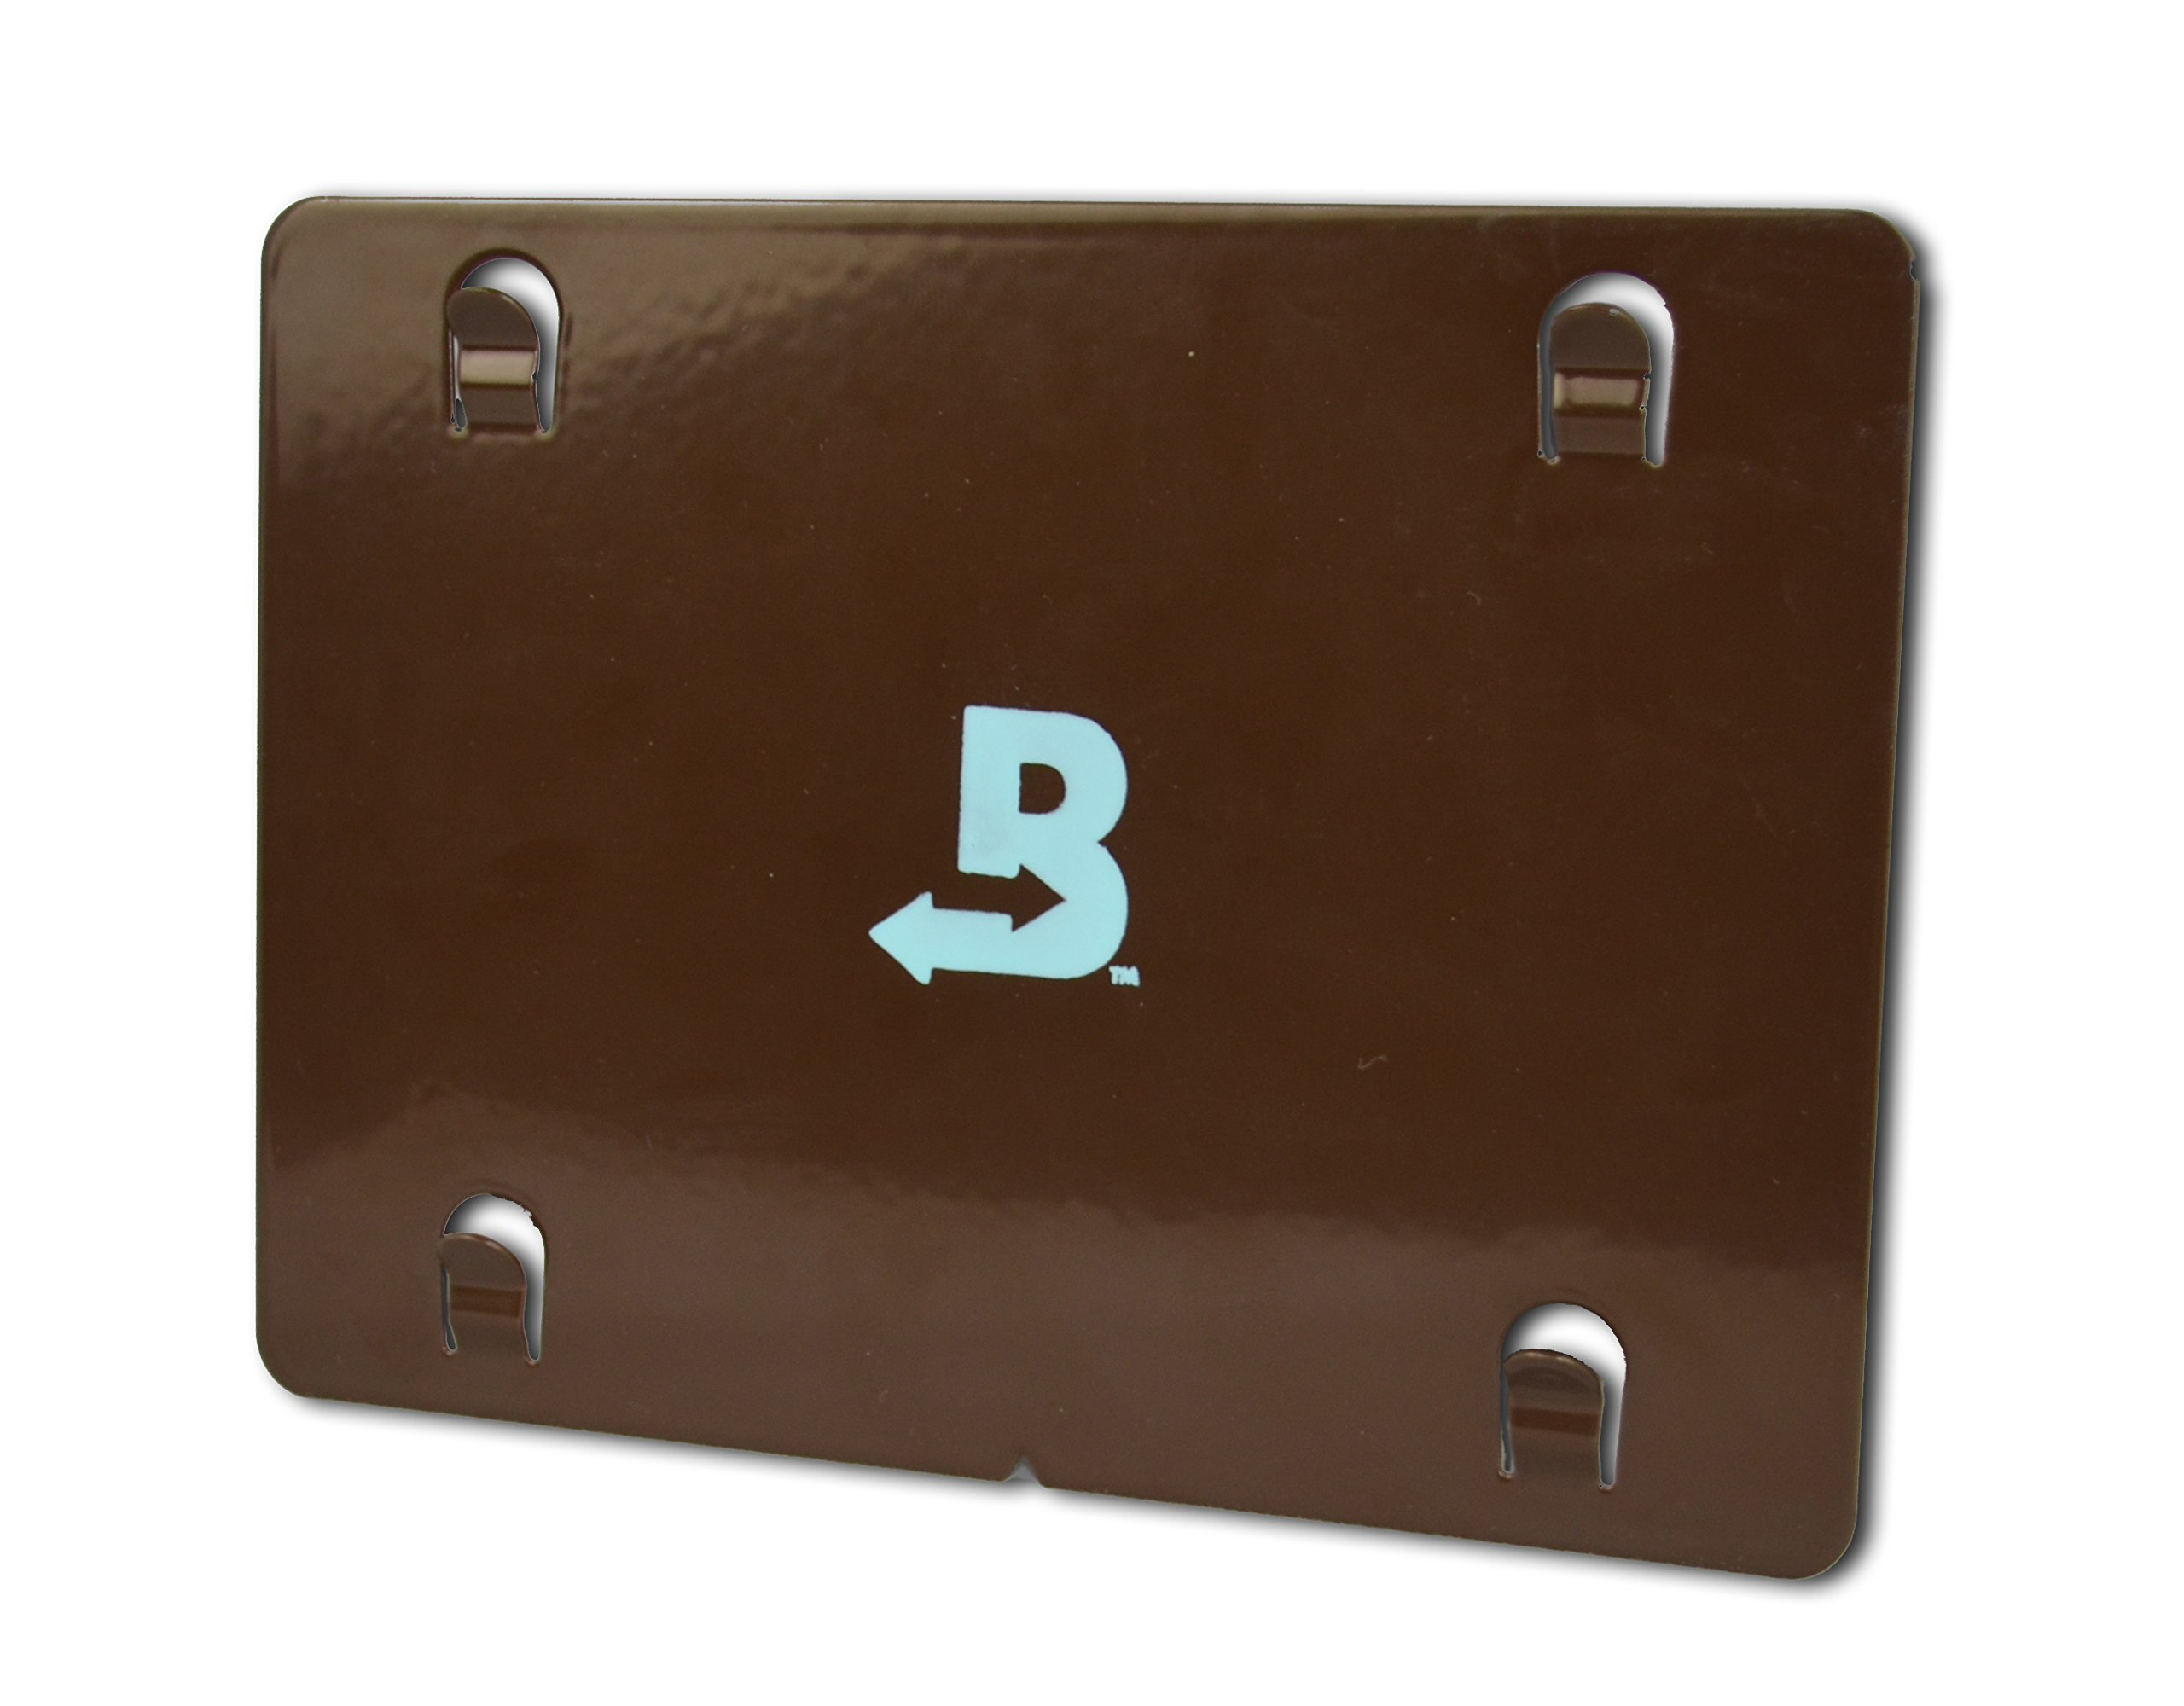 Boveda Metal Mounting Plate for Humidors, attaches (1) 320-gram Boveda with Magnetic kit (Included); Made of Powdered Coated Steel, Built in tabs Slide into The Squares on The Back of Boveda 320 Gram